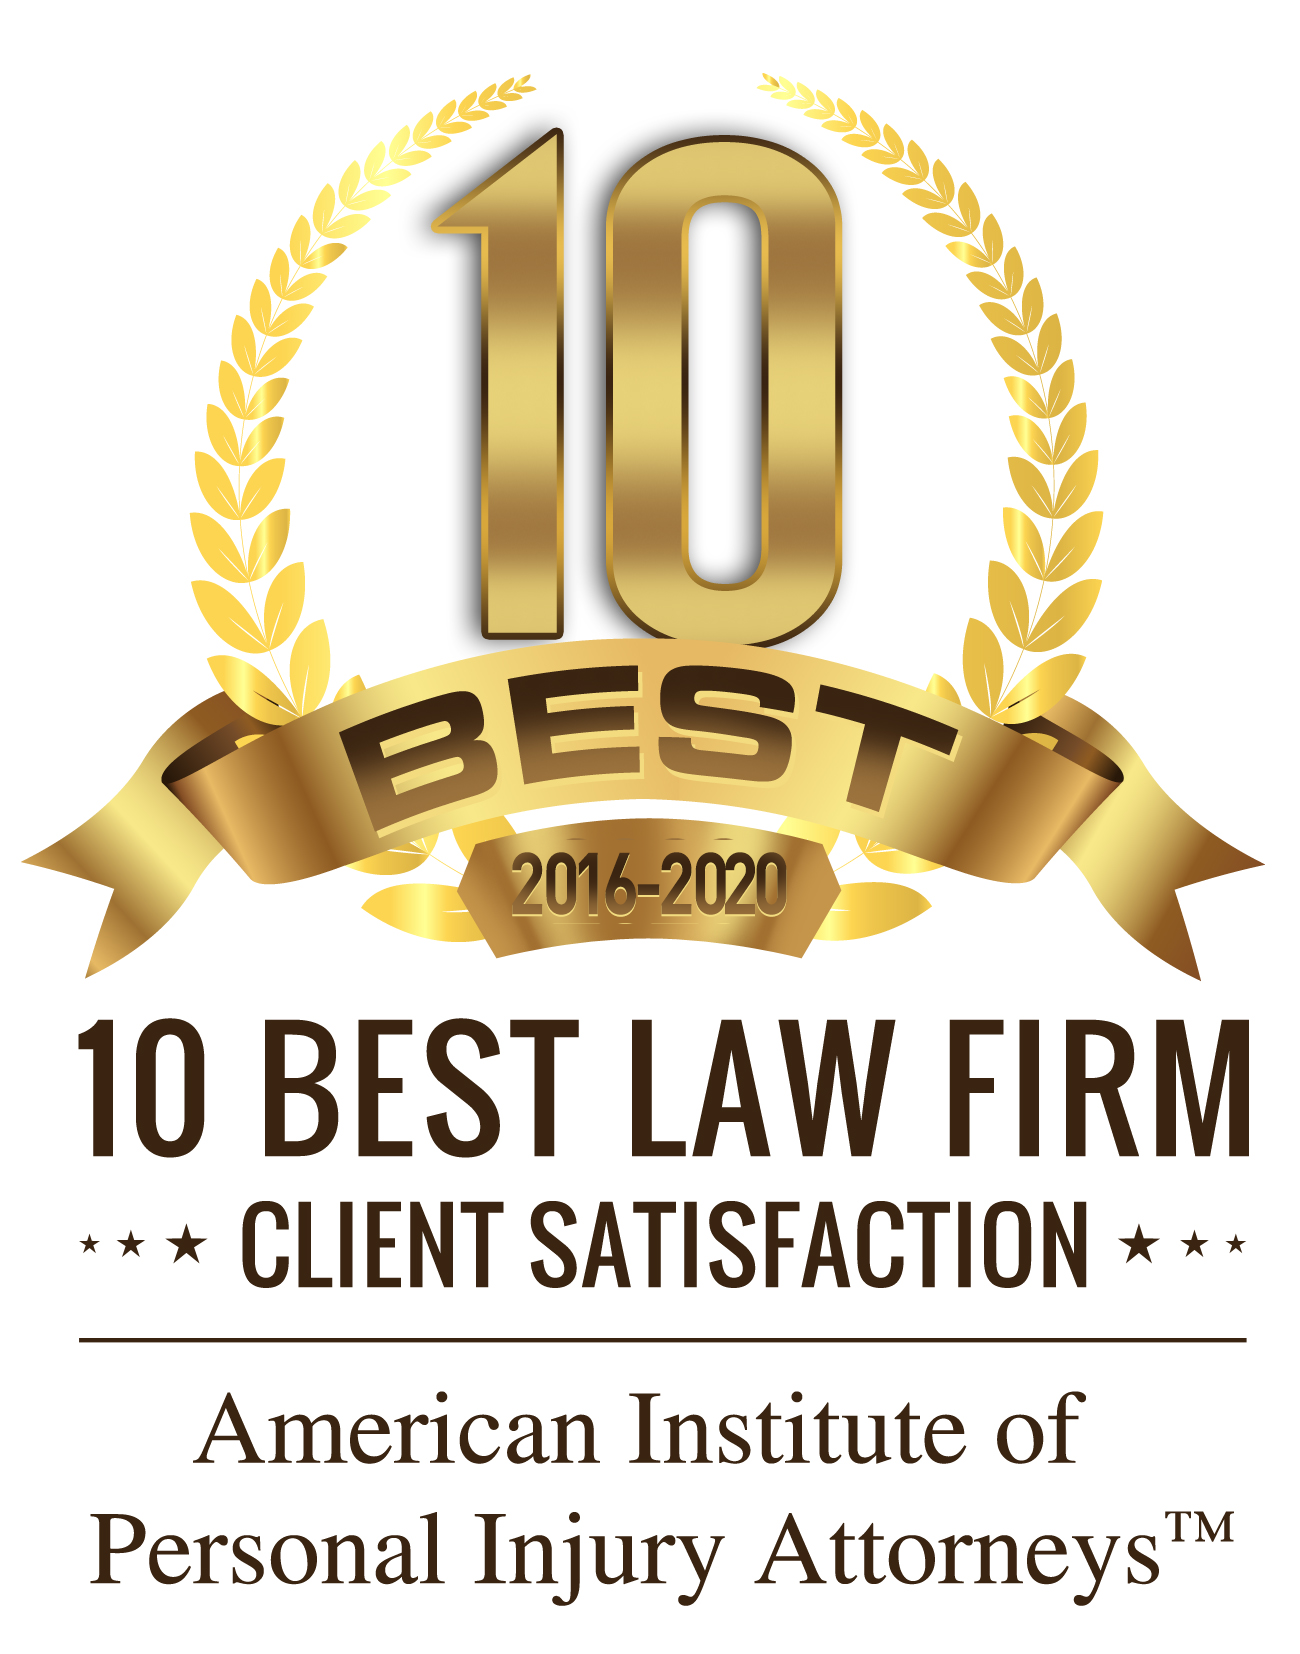 10 Best Law Firm Client Satisfaction Badge